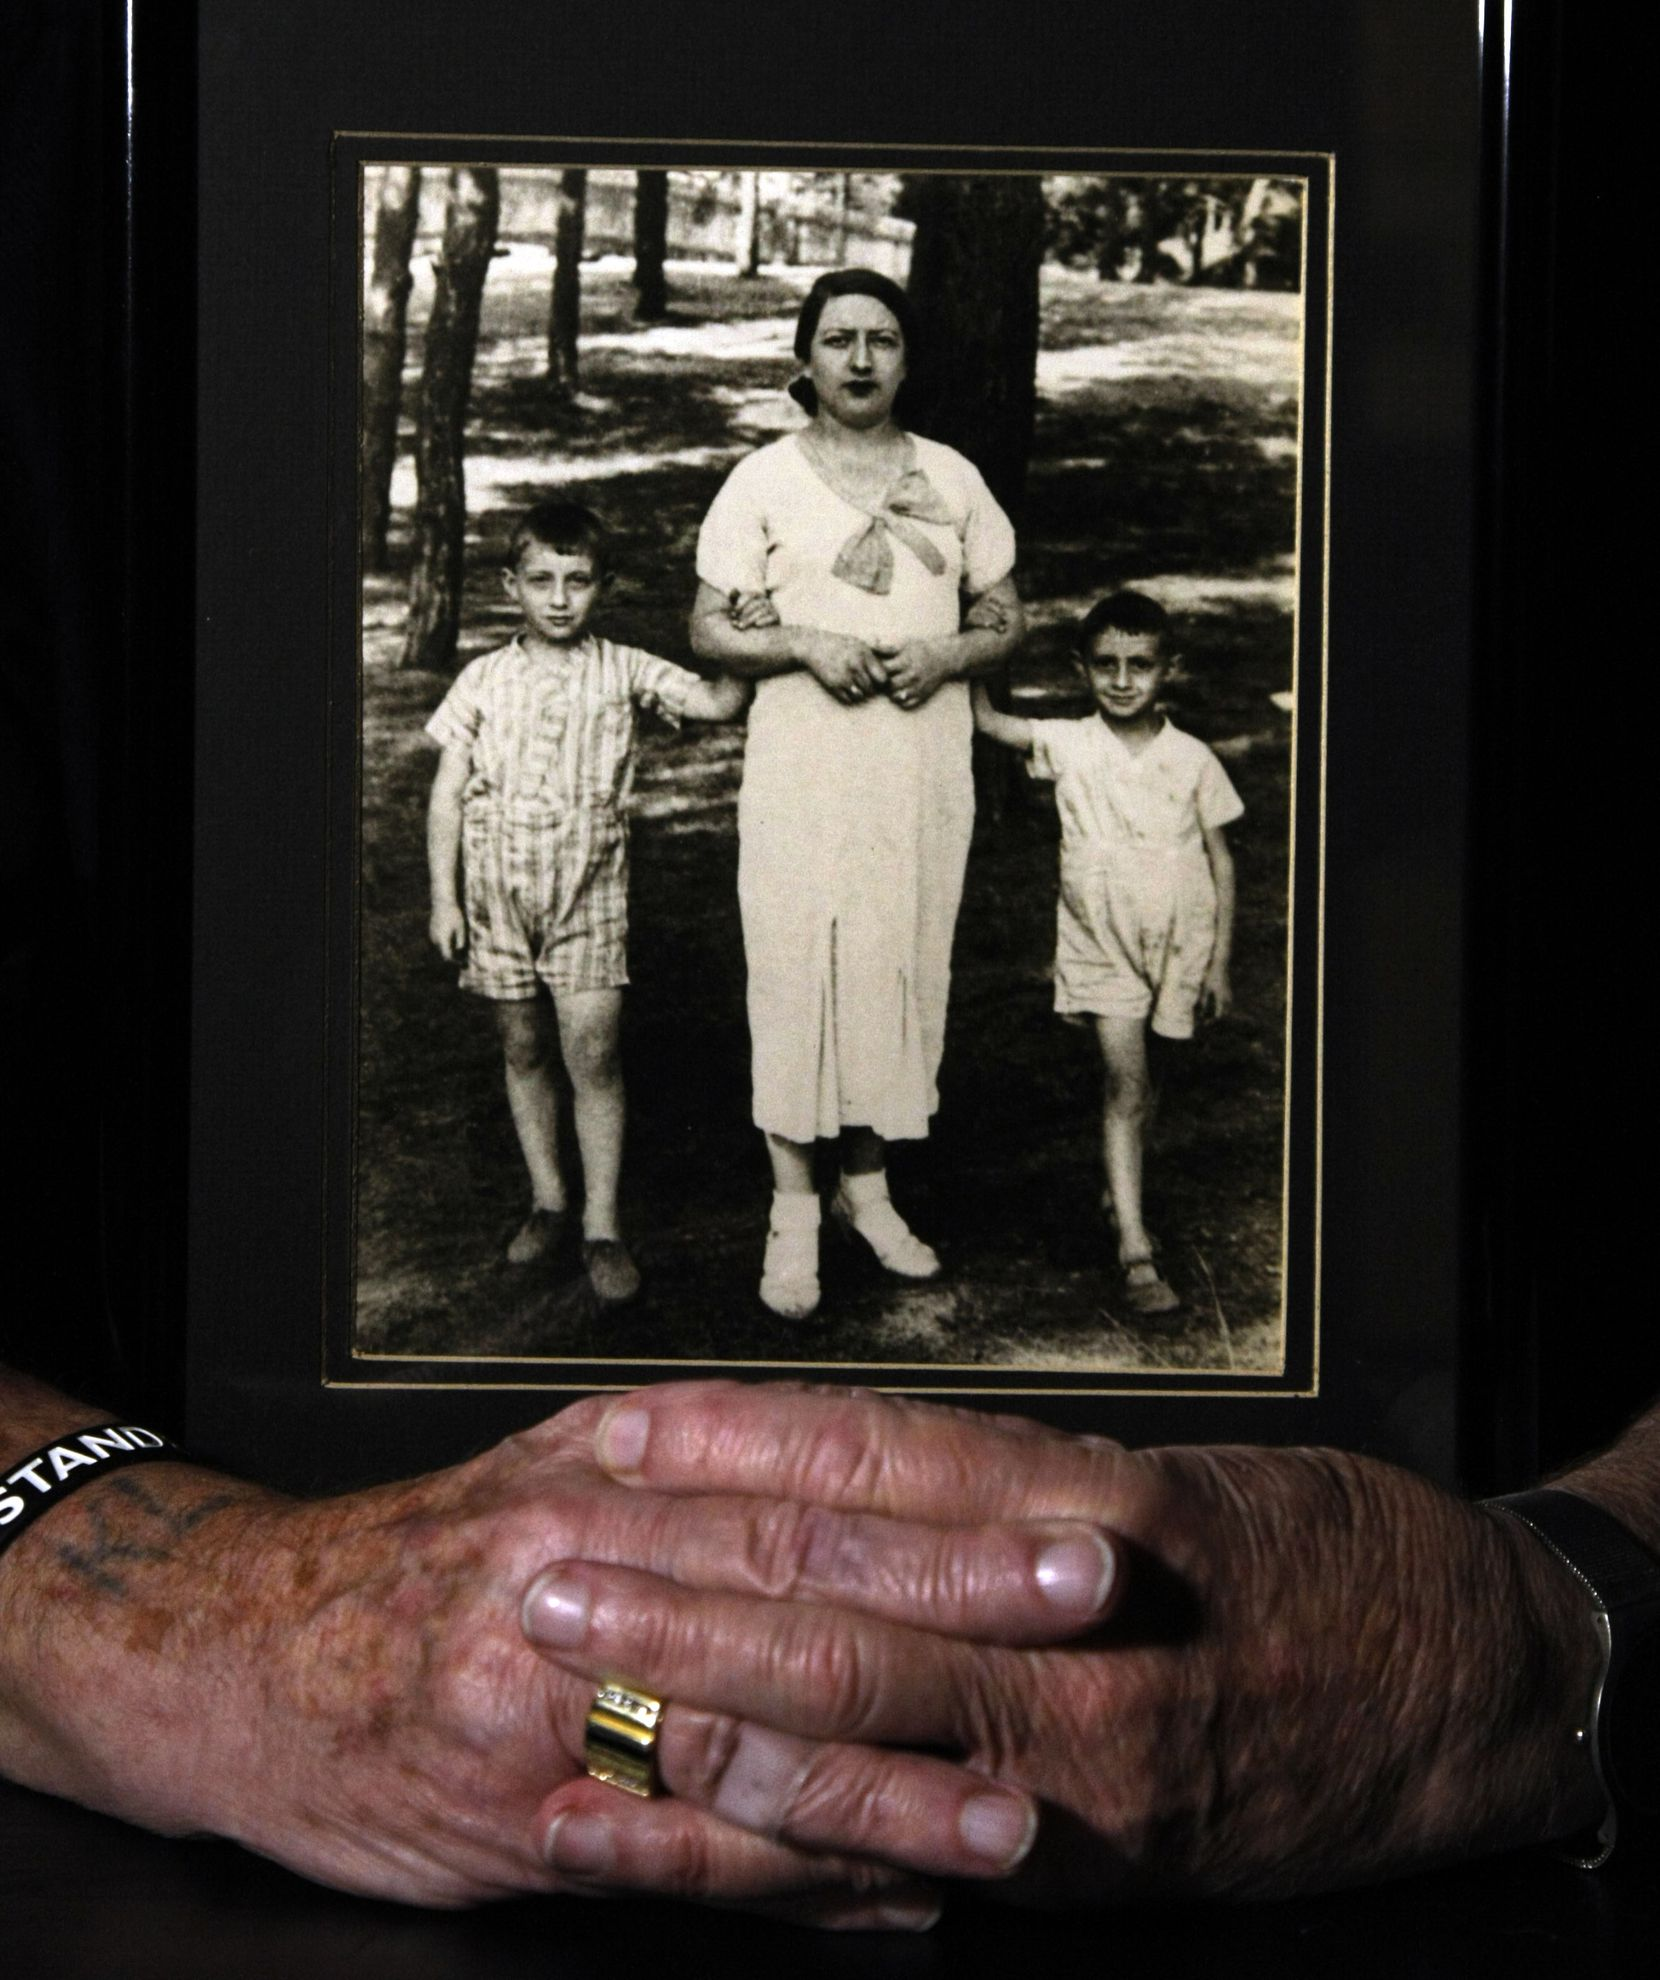 Max Glauben, a longtime Dallas resident who is a Holocaust survivor, wears his Upstander wristband next to his KL tattoo, which stands for Concentration Camp, in German. He holds a photo of himself (left) when he was 10, with his younger brother, Heniek, 8, (right) and their mother, mother, Faiga (which is Yiddish, or Fela, in Polish), that was taken in Poland in 1936. Photographed on July 29, 2011.  (Staff photo)